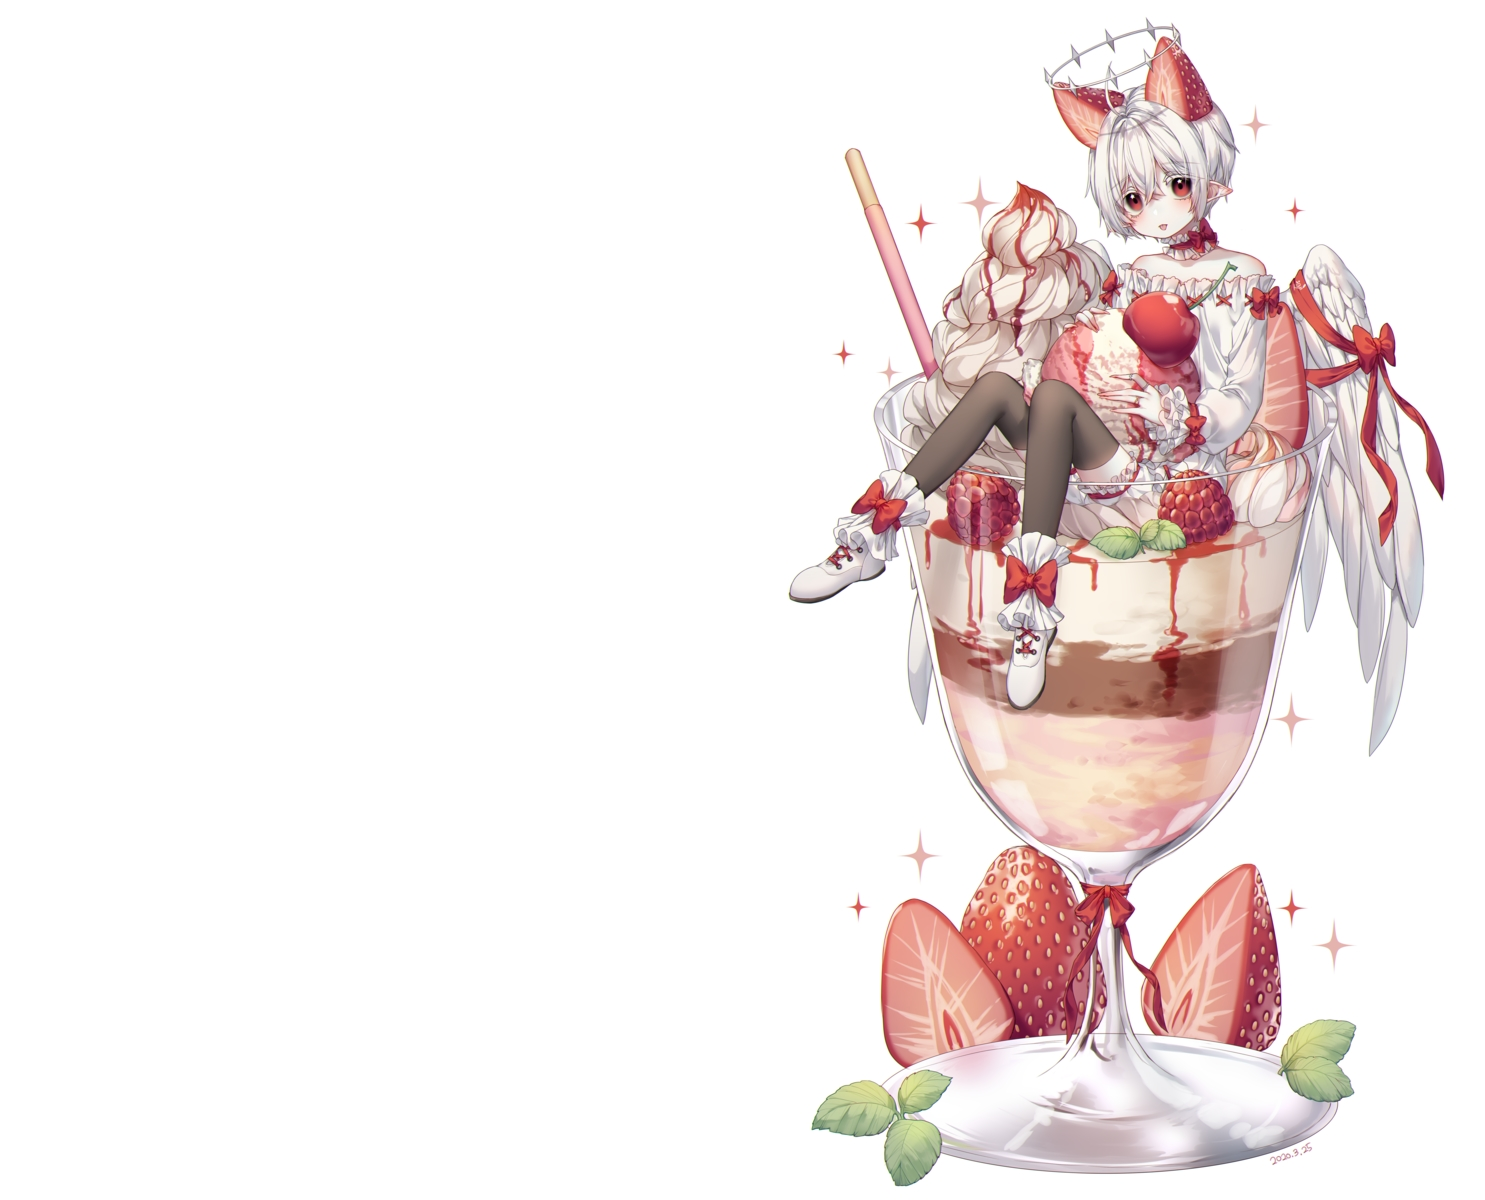 albinoraccoon all_male bloomers bow cherry food fruit halo ice_cream male original pointed_ears red_eyes ribbons short_hair strawberry white white_hair wings